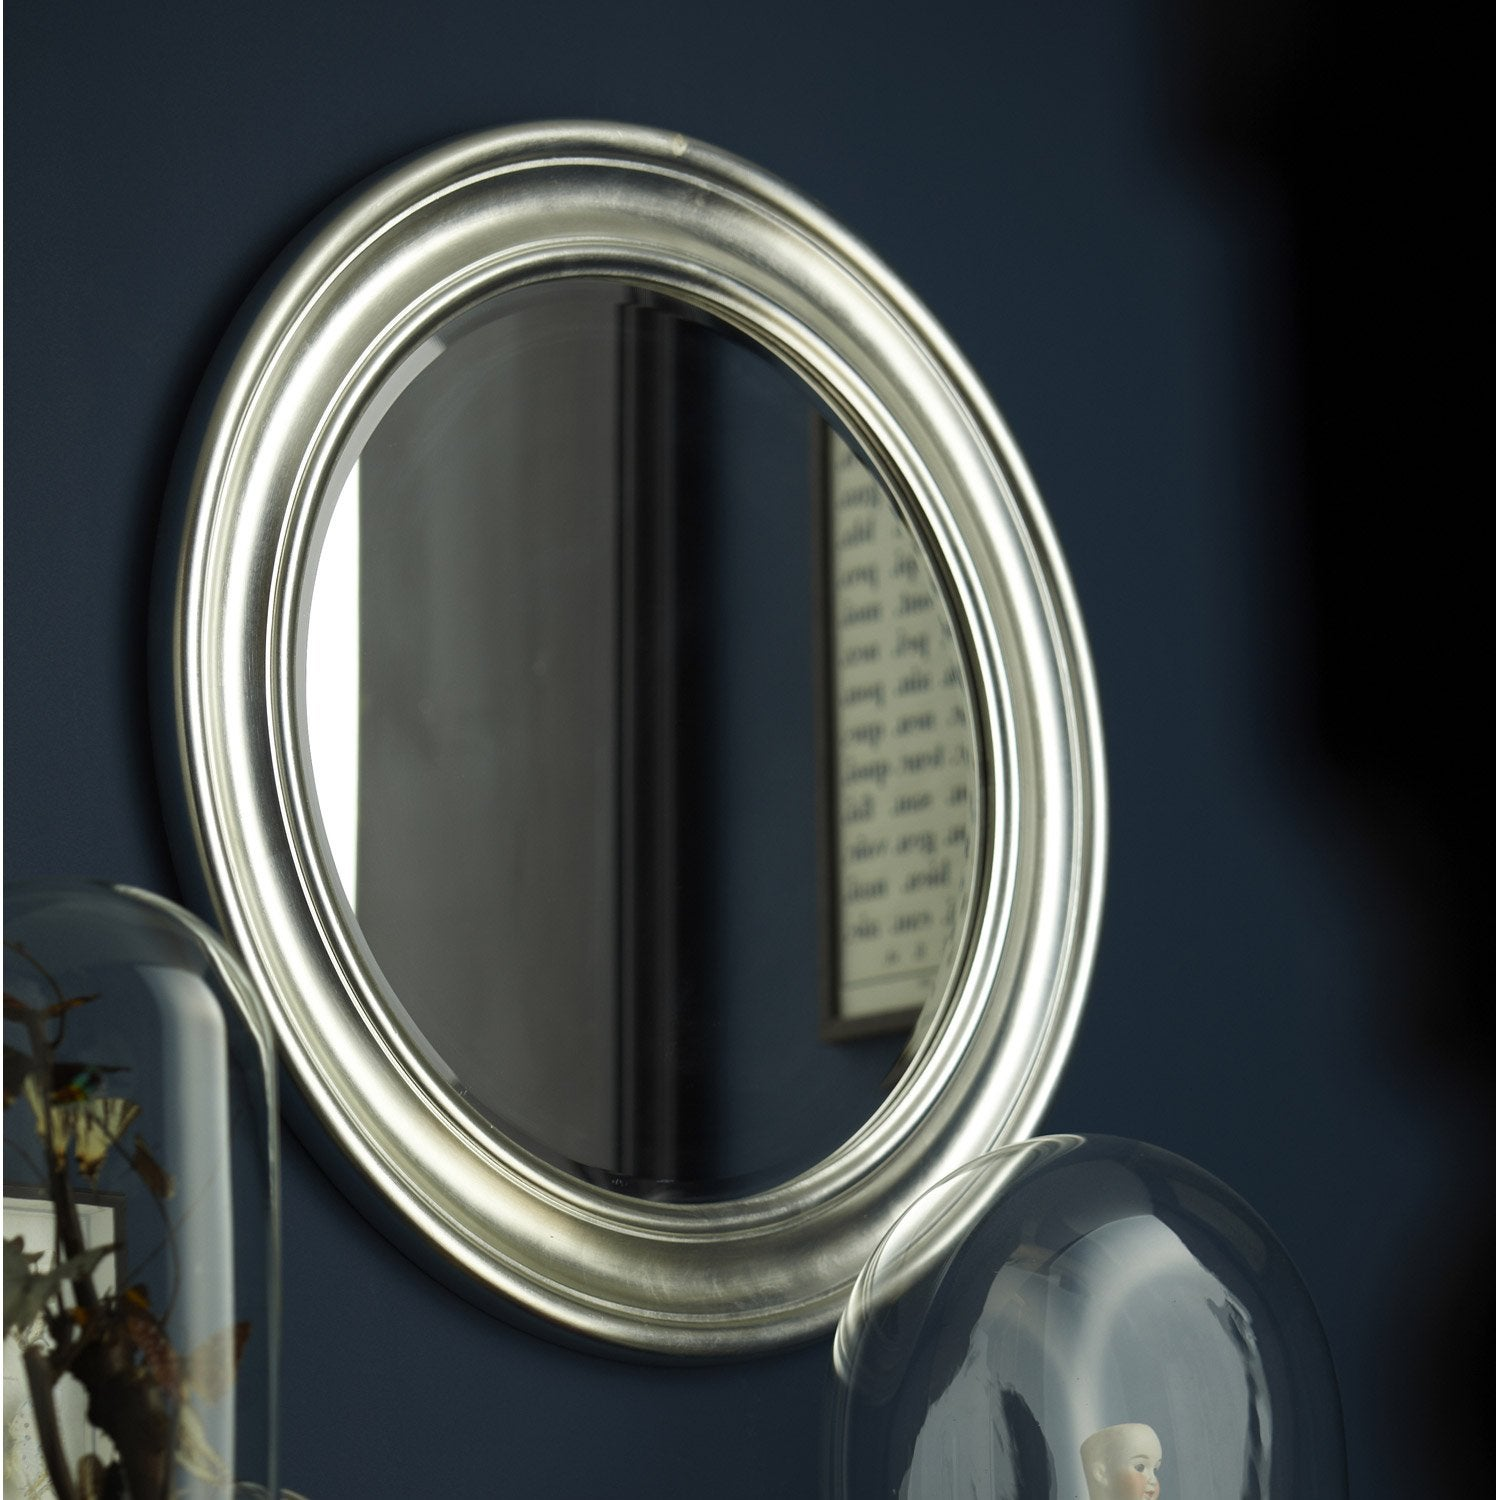 miroir daventry rond argent diam tre 72 cm leroy merlin. Black Bedroom Furniture Sets. Home Design Ideas